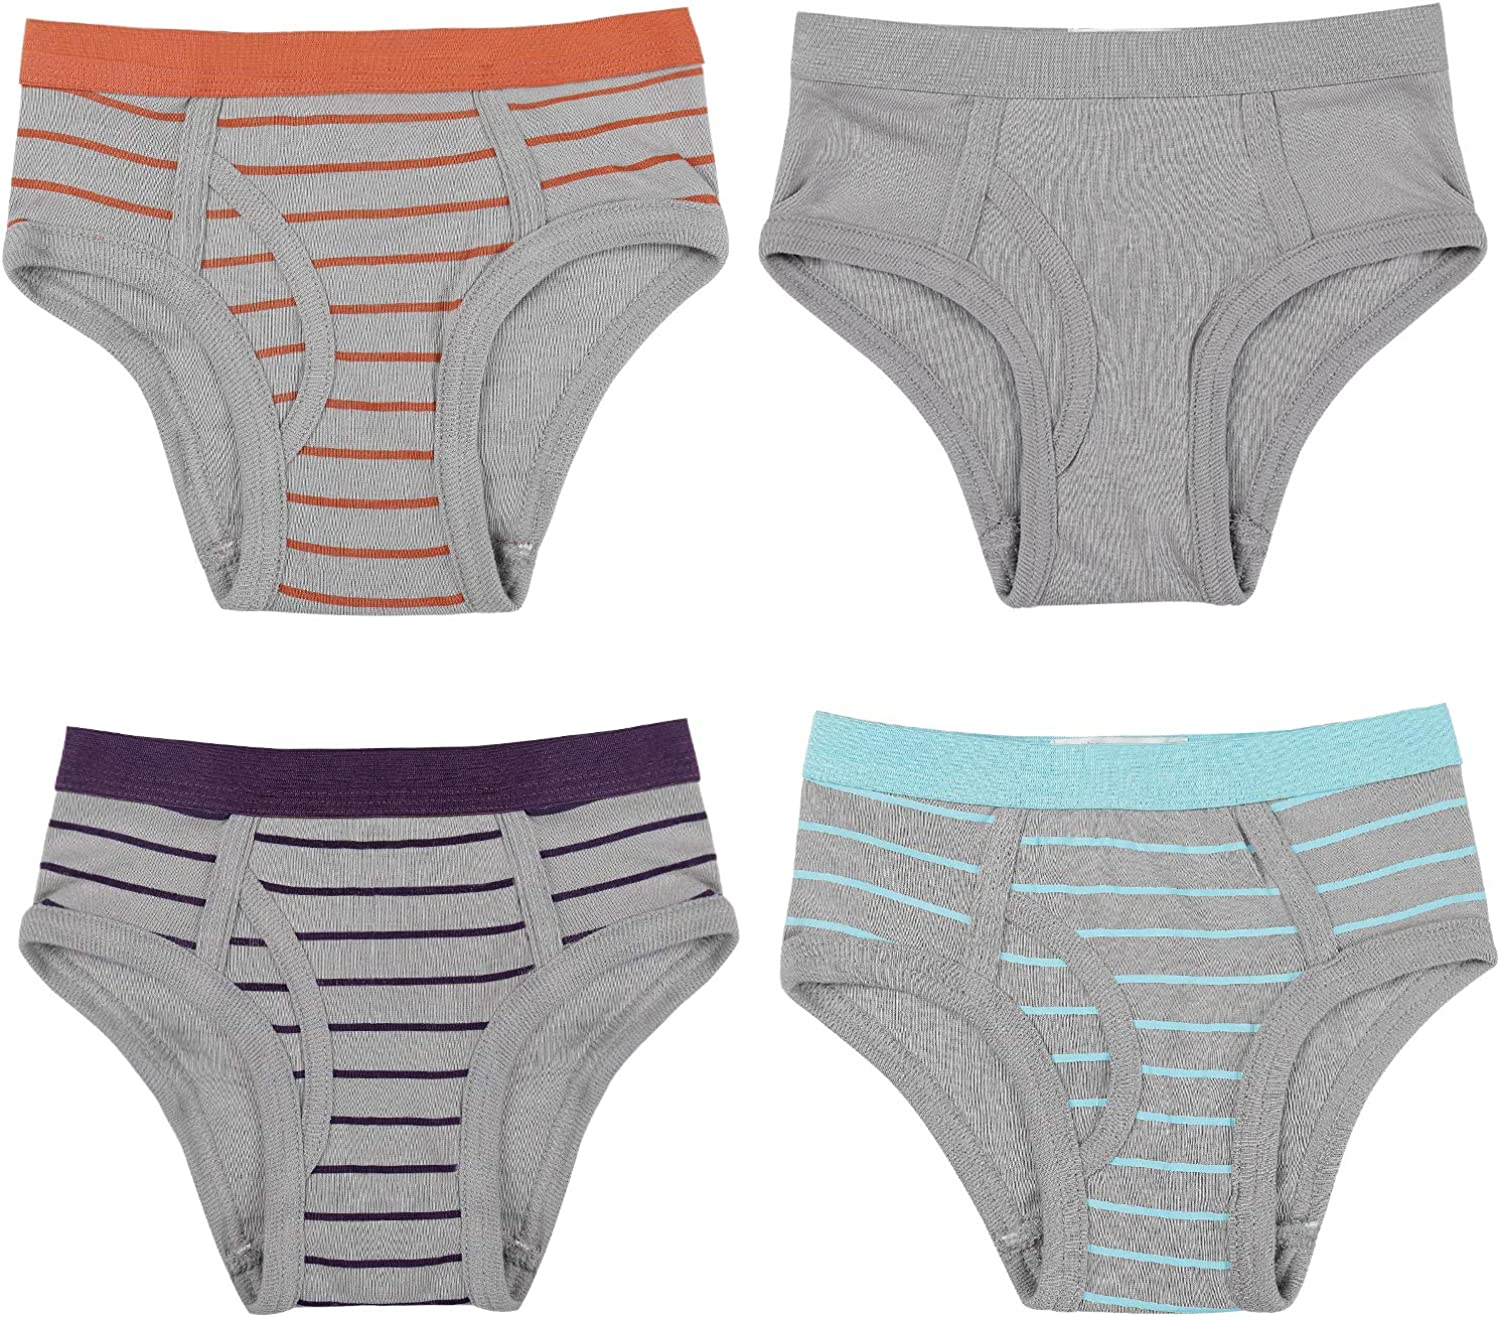 Buyless Fashion Boys Brief in Assorted Colors Soft Cotton Underwear 4 Pack